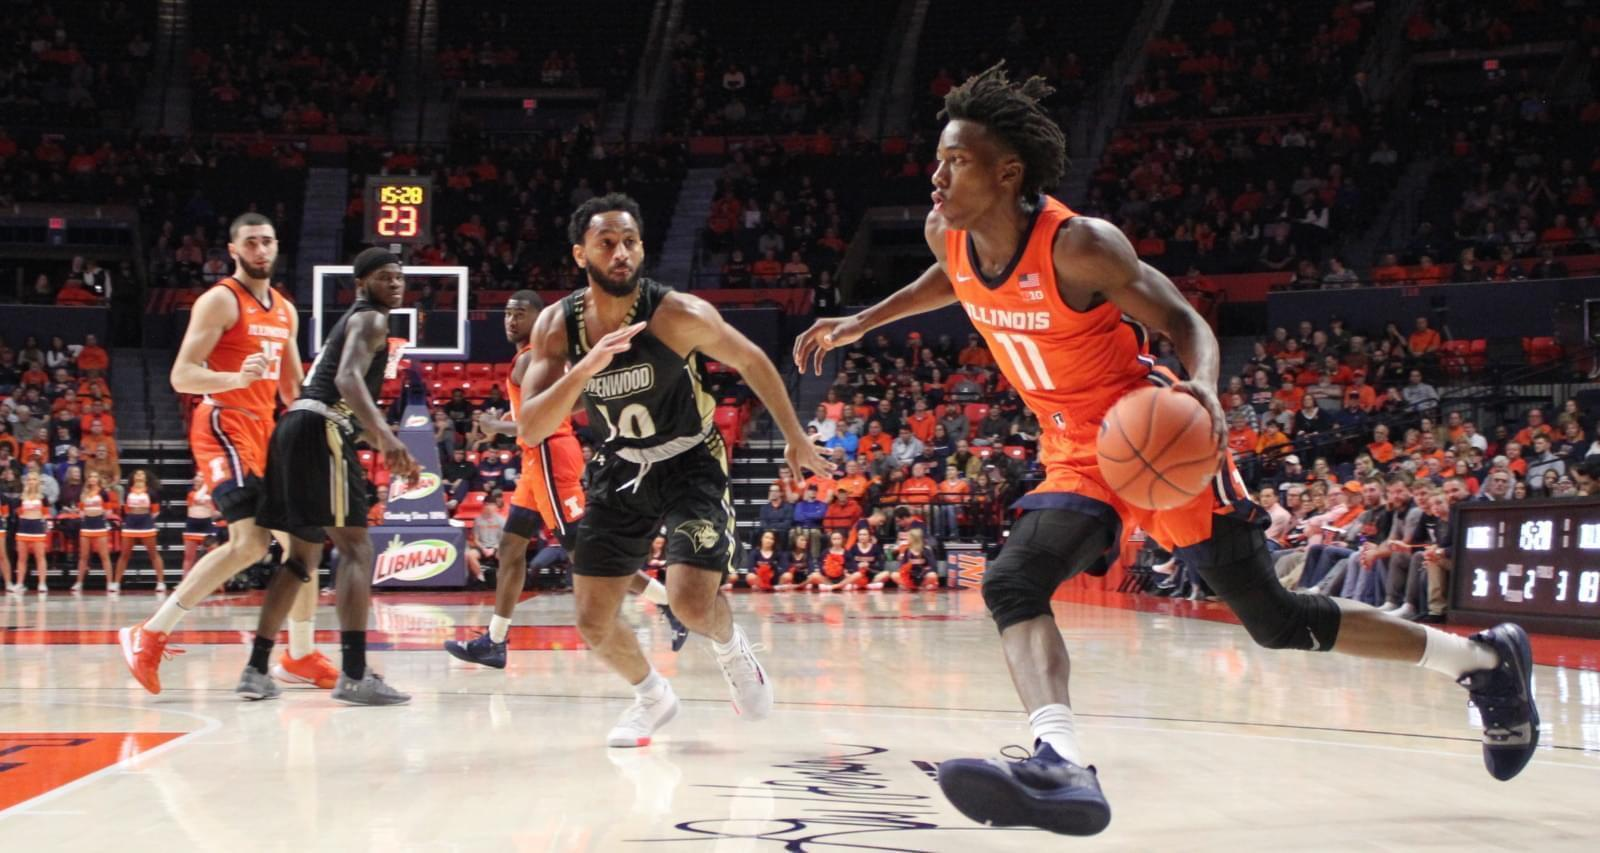 Ayo Dosunmu drives to the basket against Lindenwood Tuesday night in Champaign.